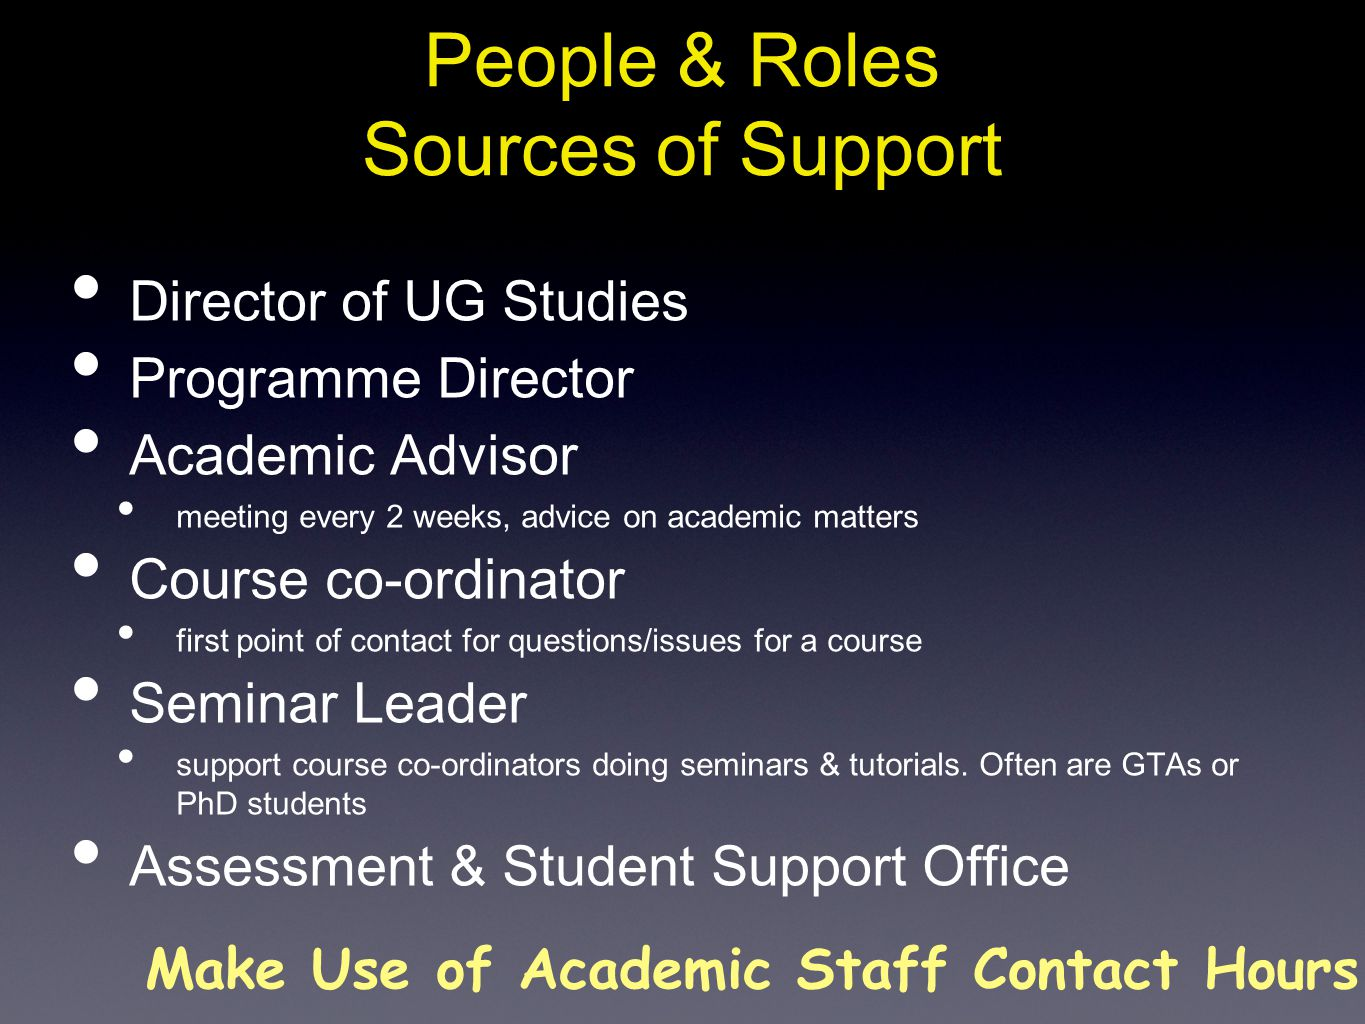 People & Roles Sources of Support